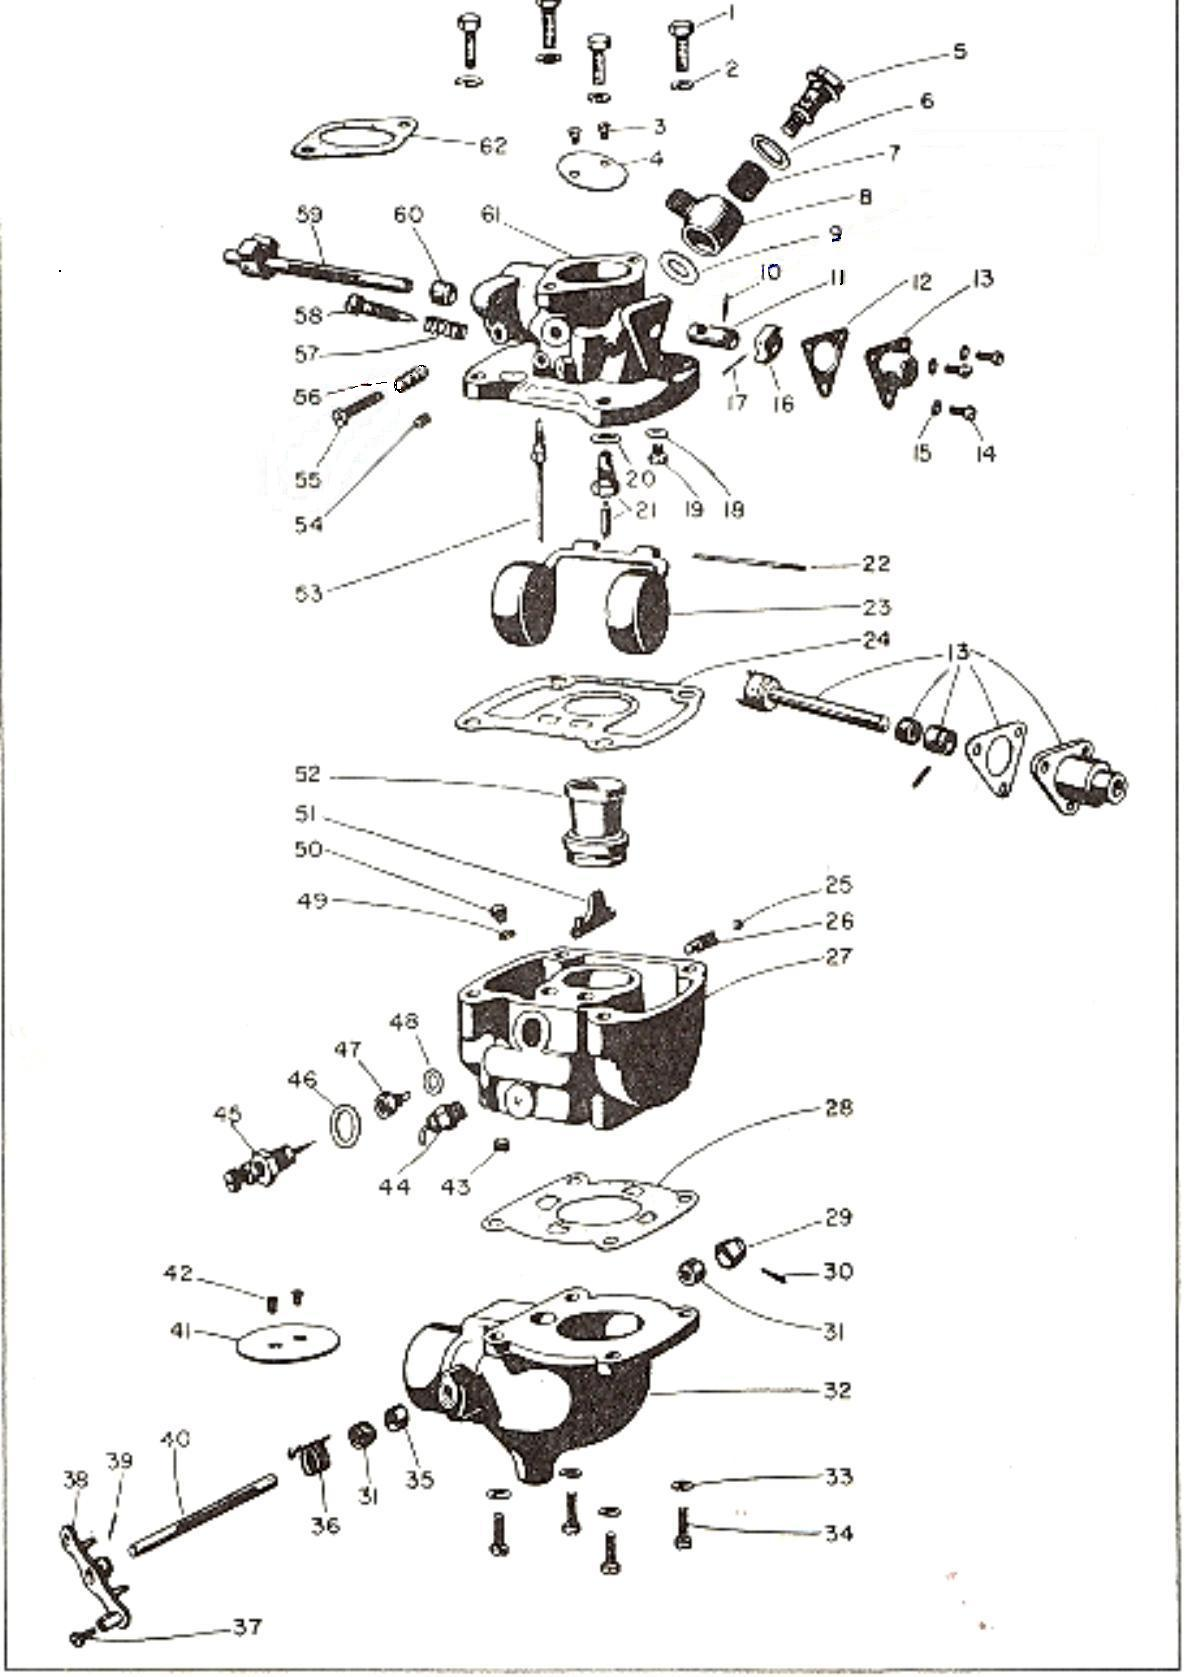 S Super E Shorty Carburetor Diagram